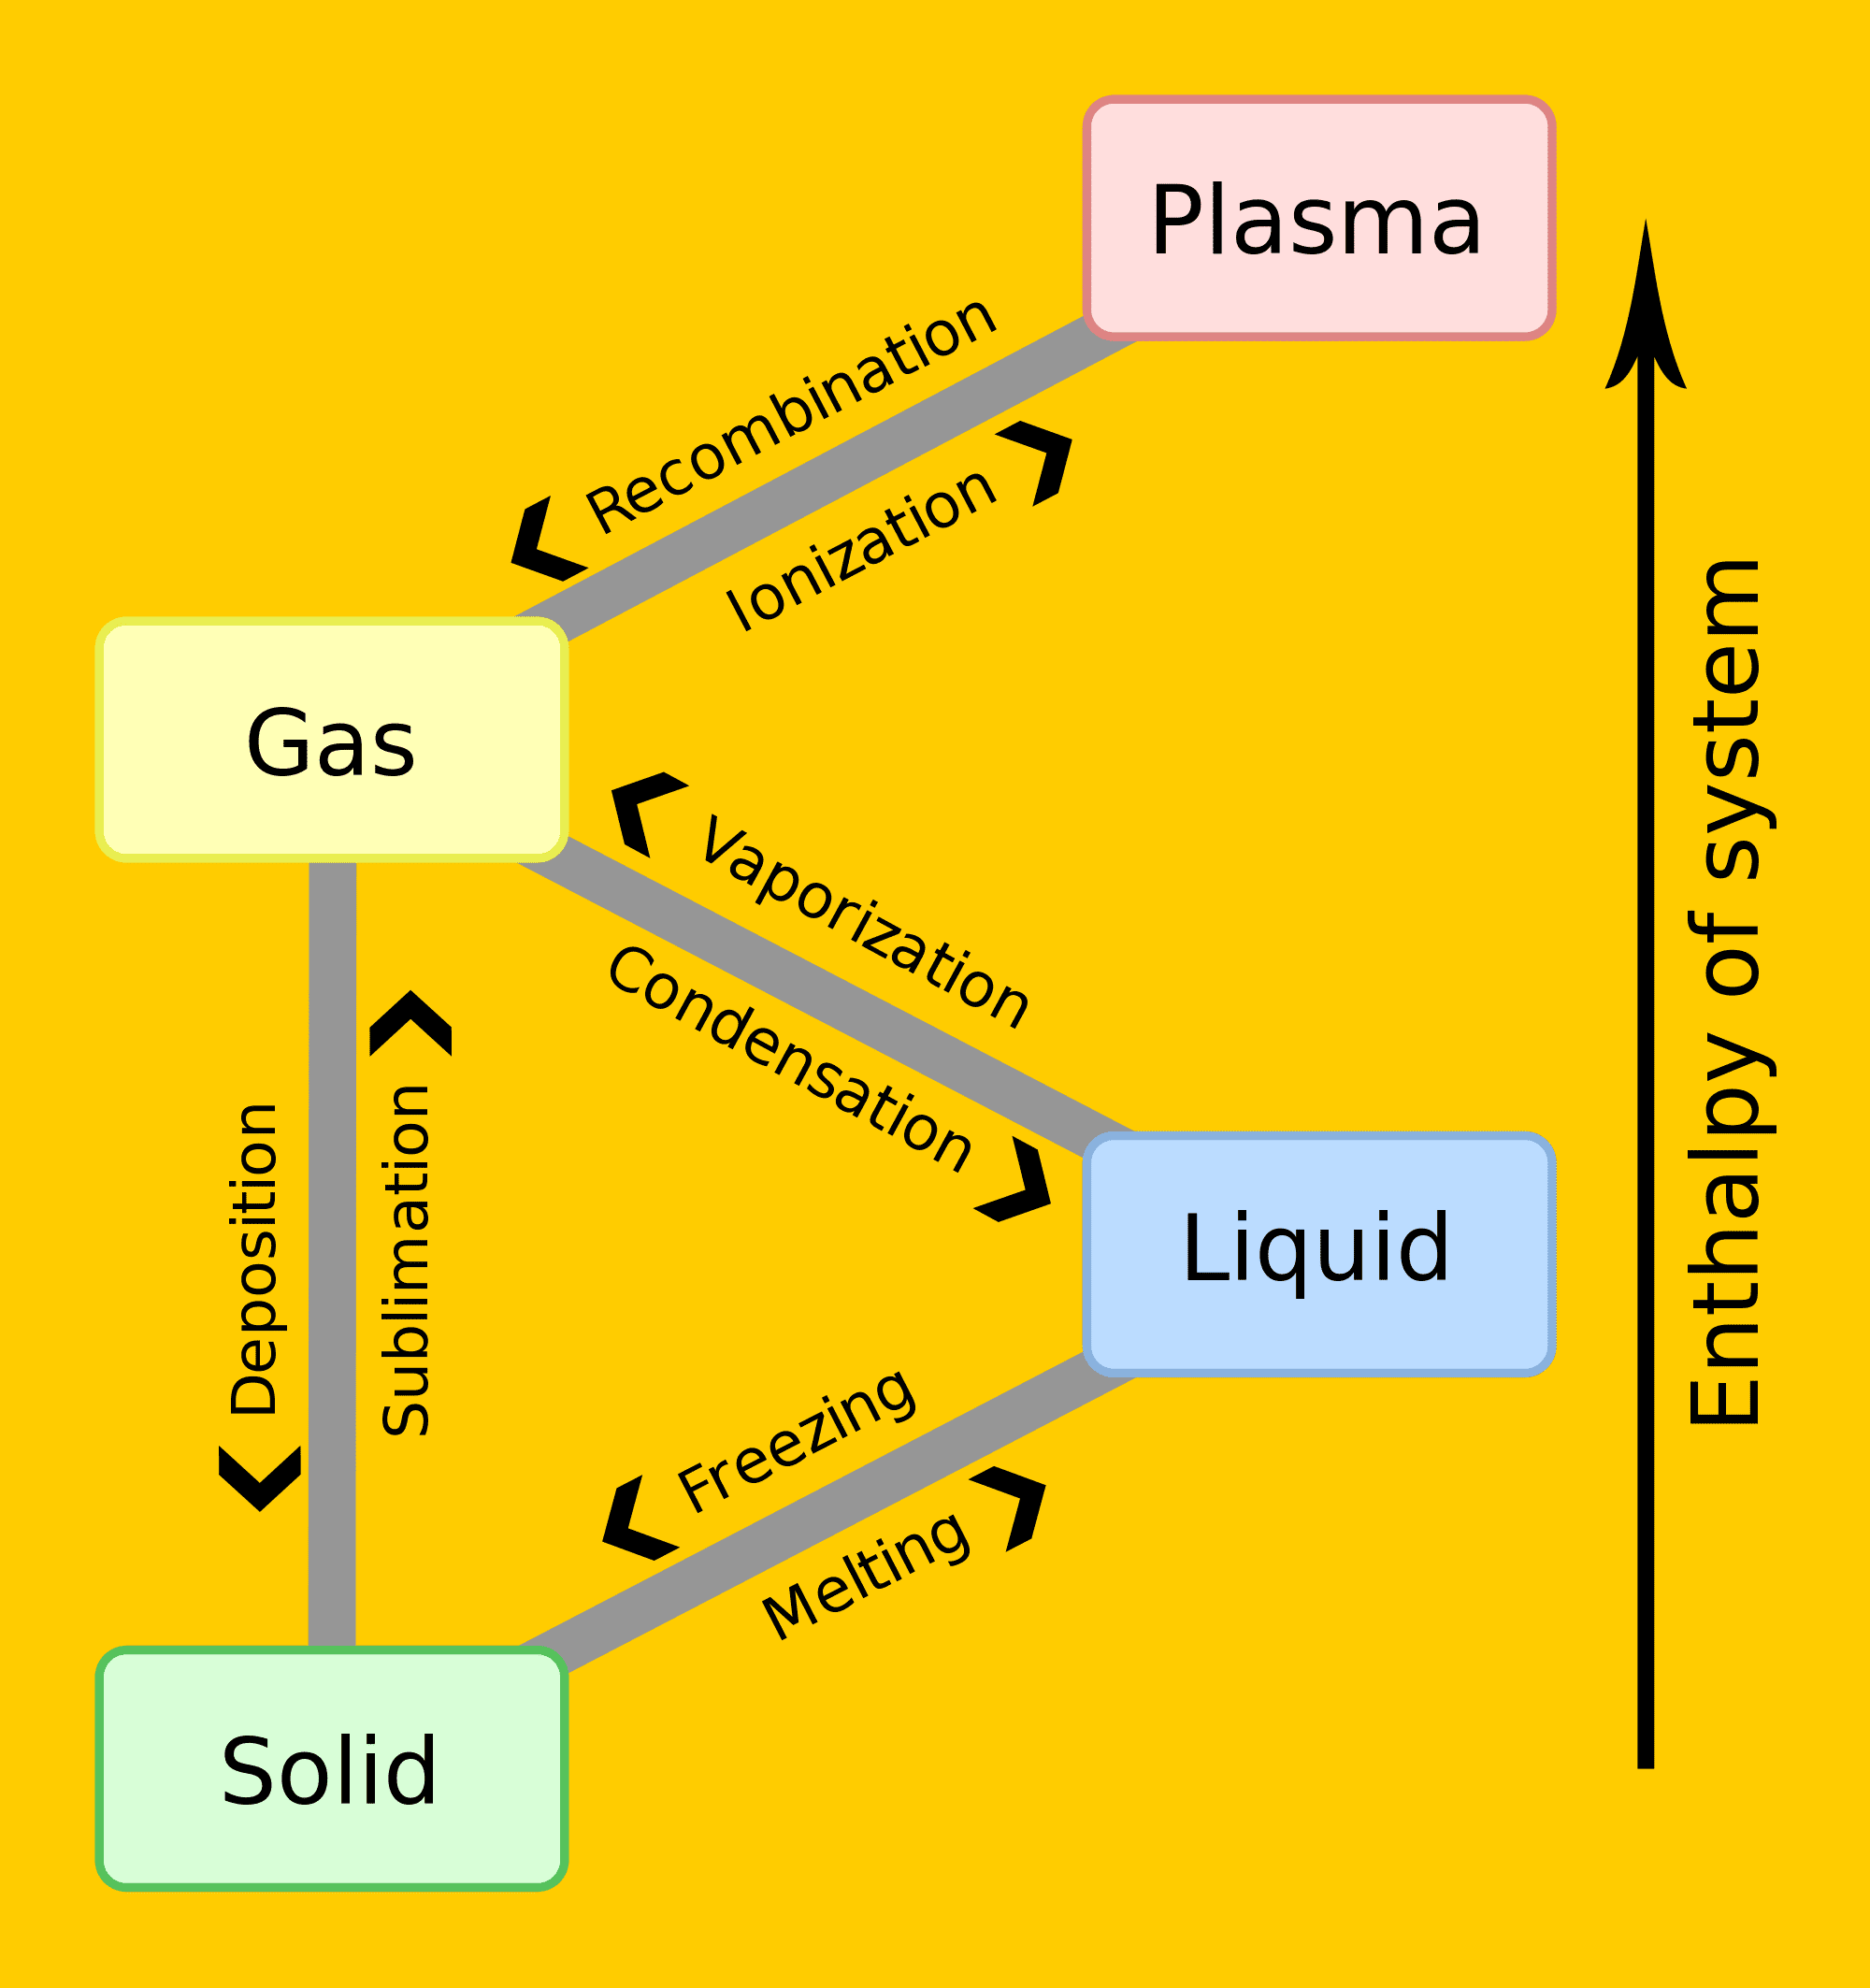 Condensation Diagram